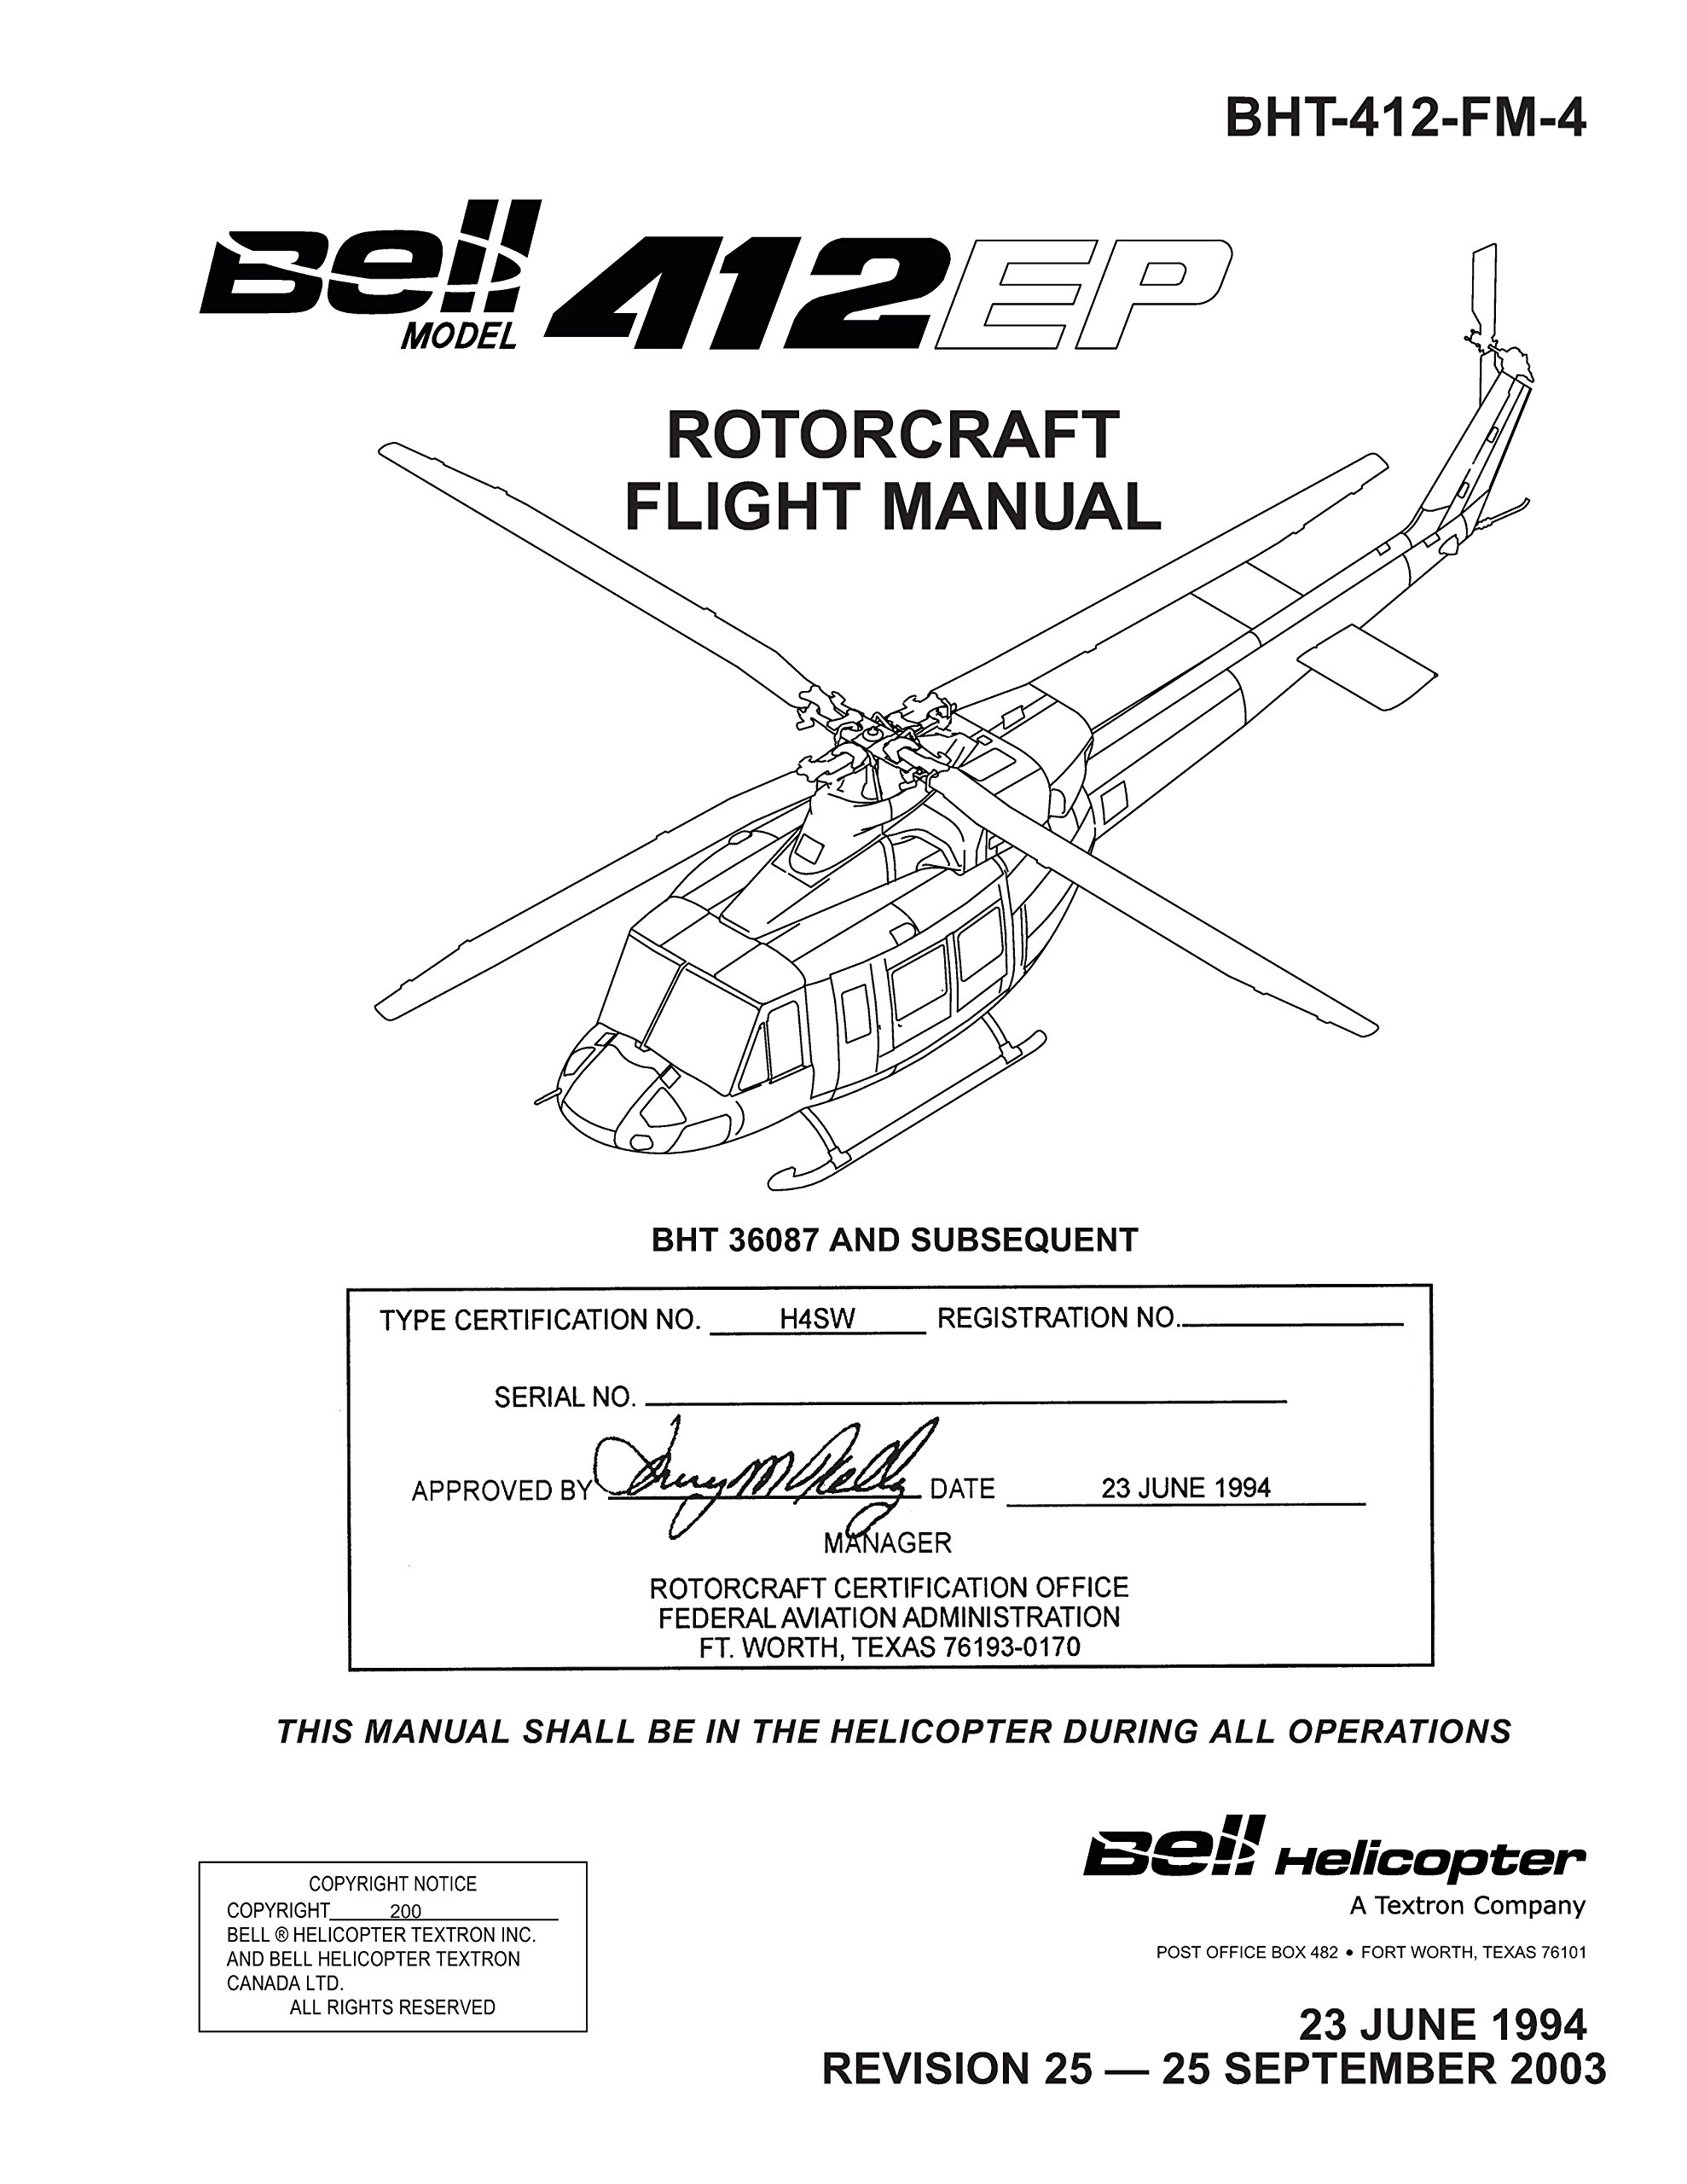 Bell 412 EP ROTORCRAFT FLIGHT MANUAL: Bell Helicopter Textron Inc.:  Amazon.com: Books